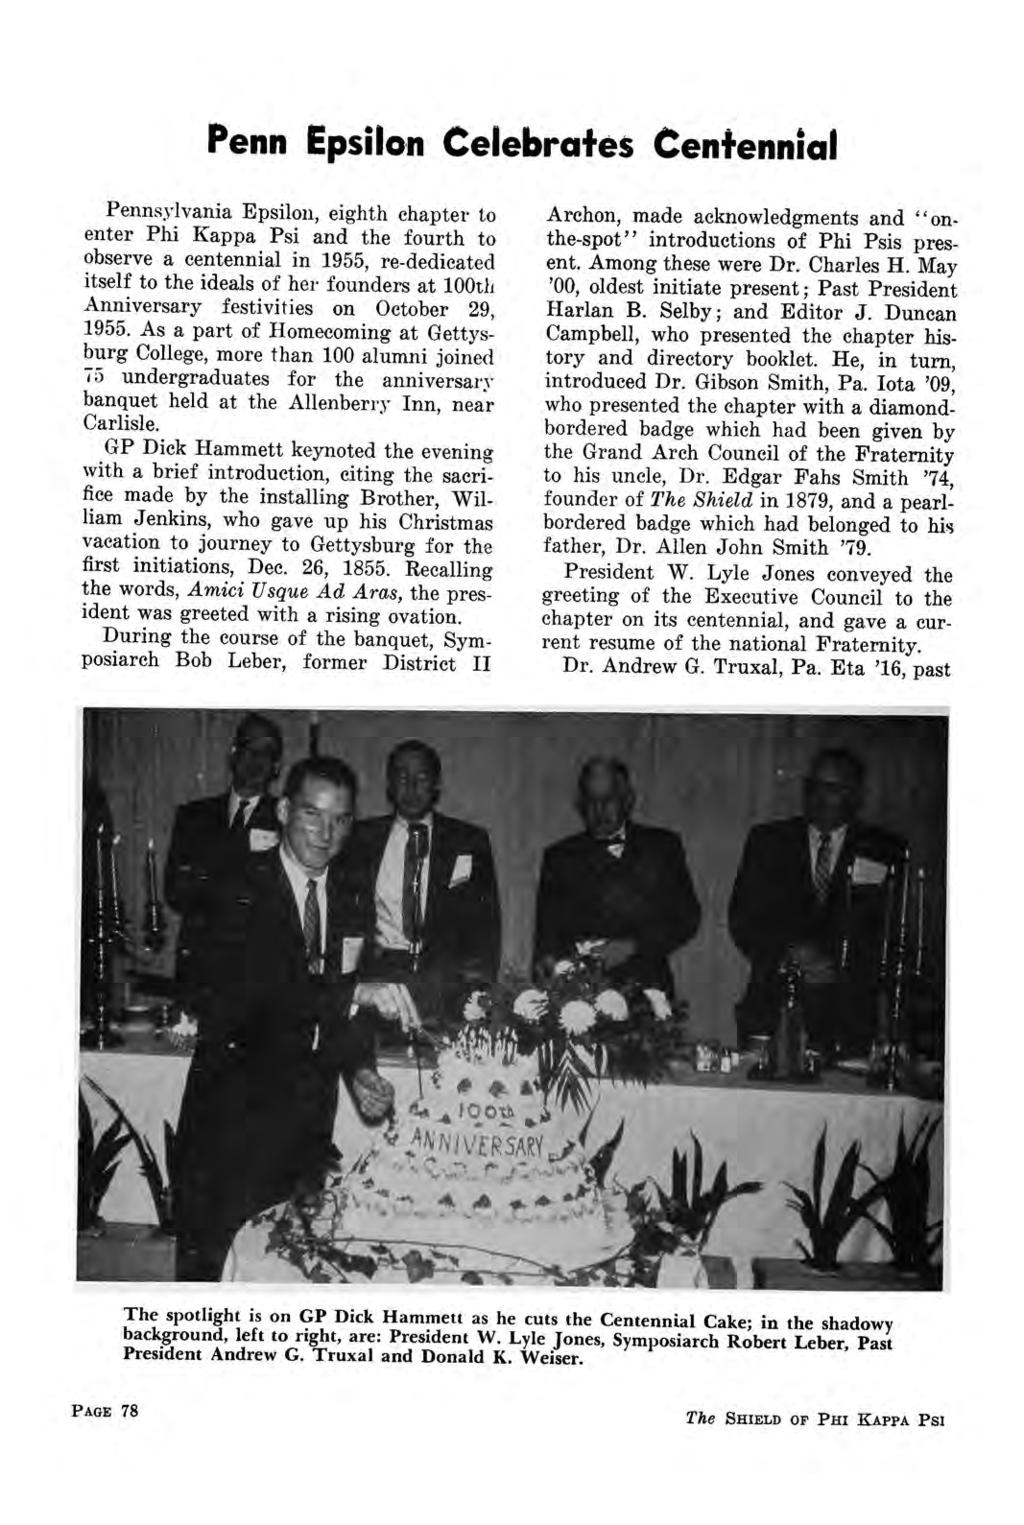 Penn Epsilon Celebrates Centennial Pennsylvania Epsilon, eighth chapter to enter Phi Kappa Psi and the fourth to observe a centennial in 1955, re-dedicated itself to the ideals of her founders at